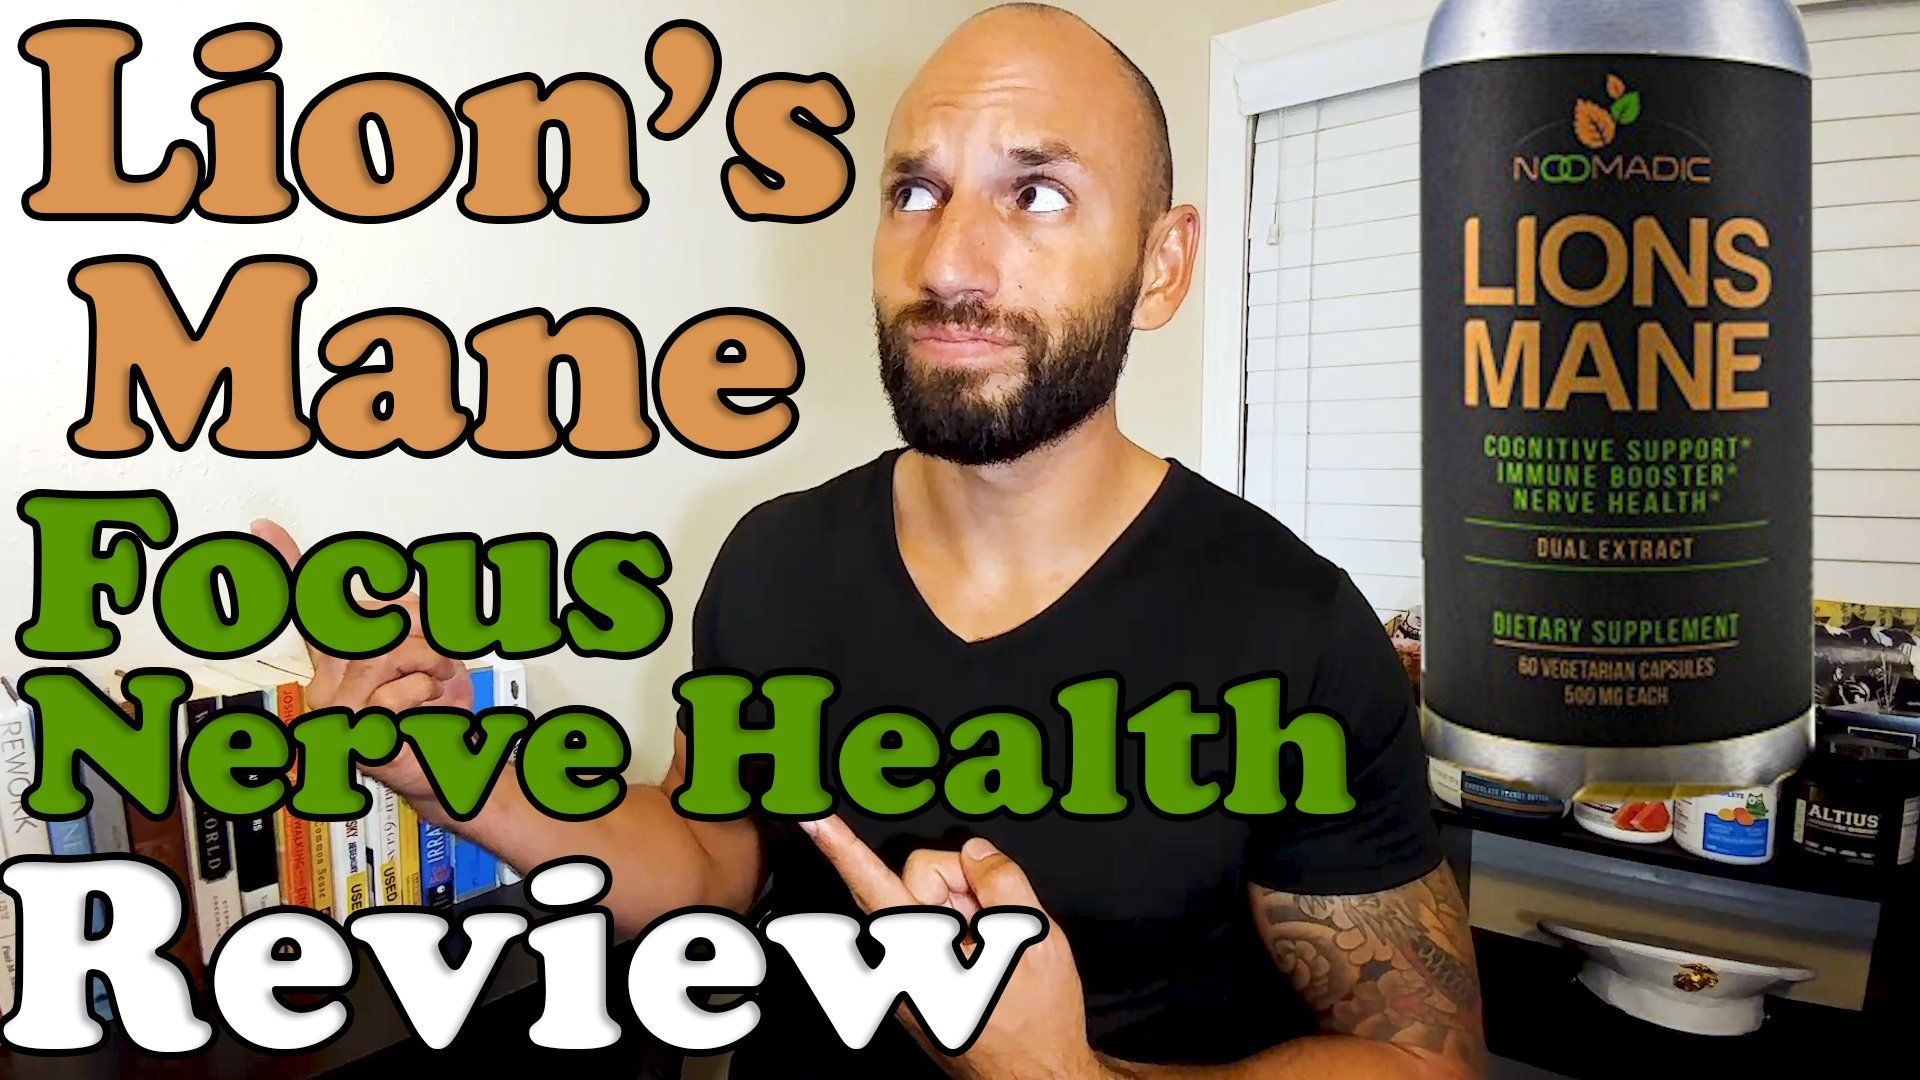 Lions mane mushroom extract supplement review with